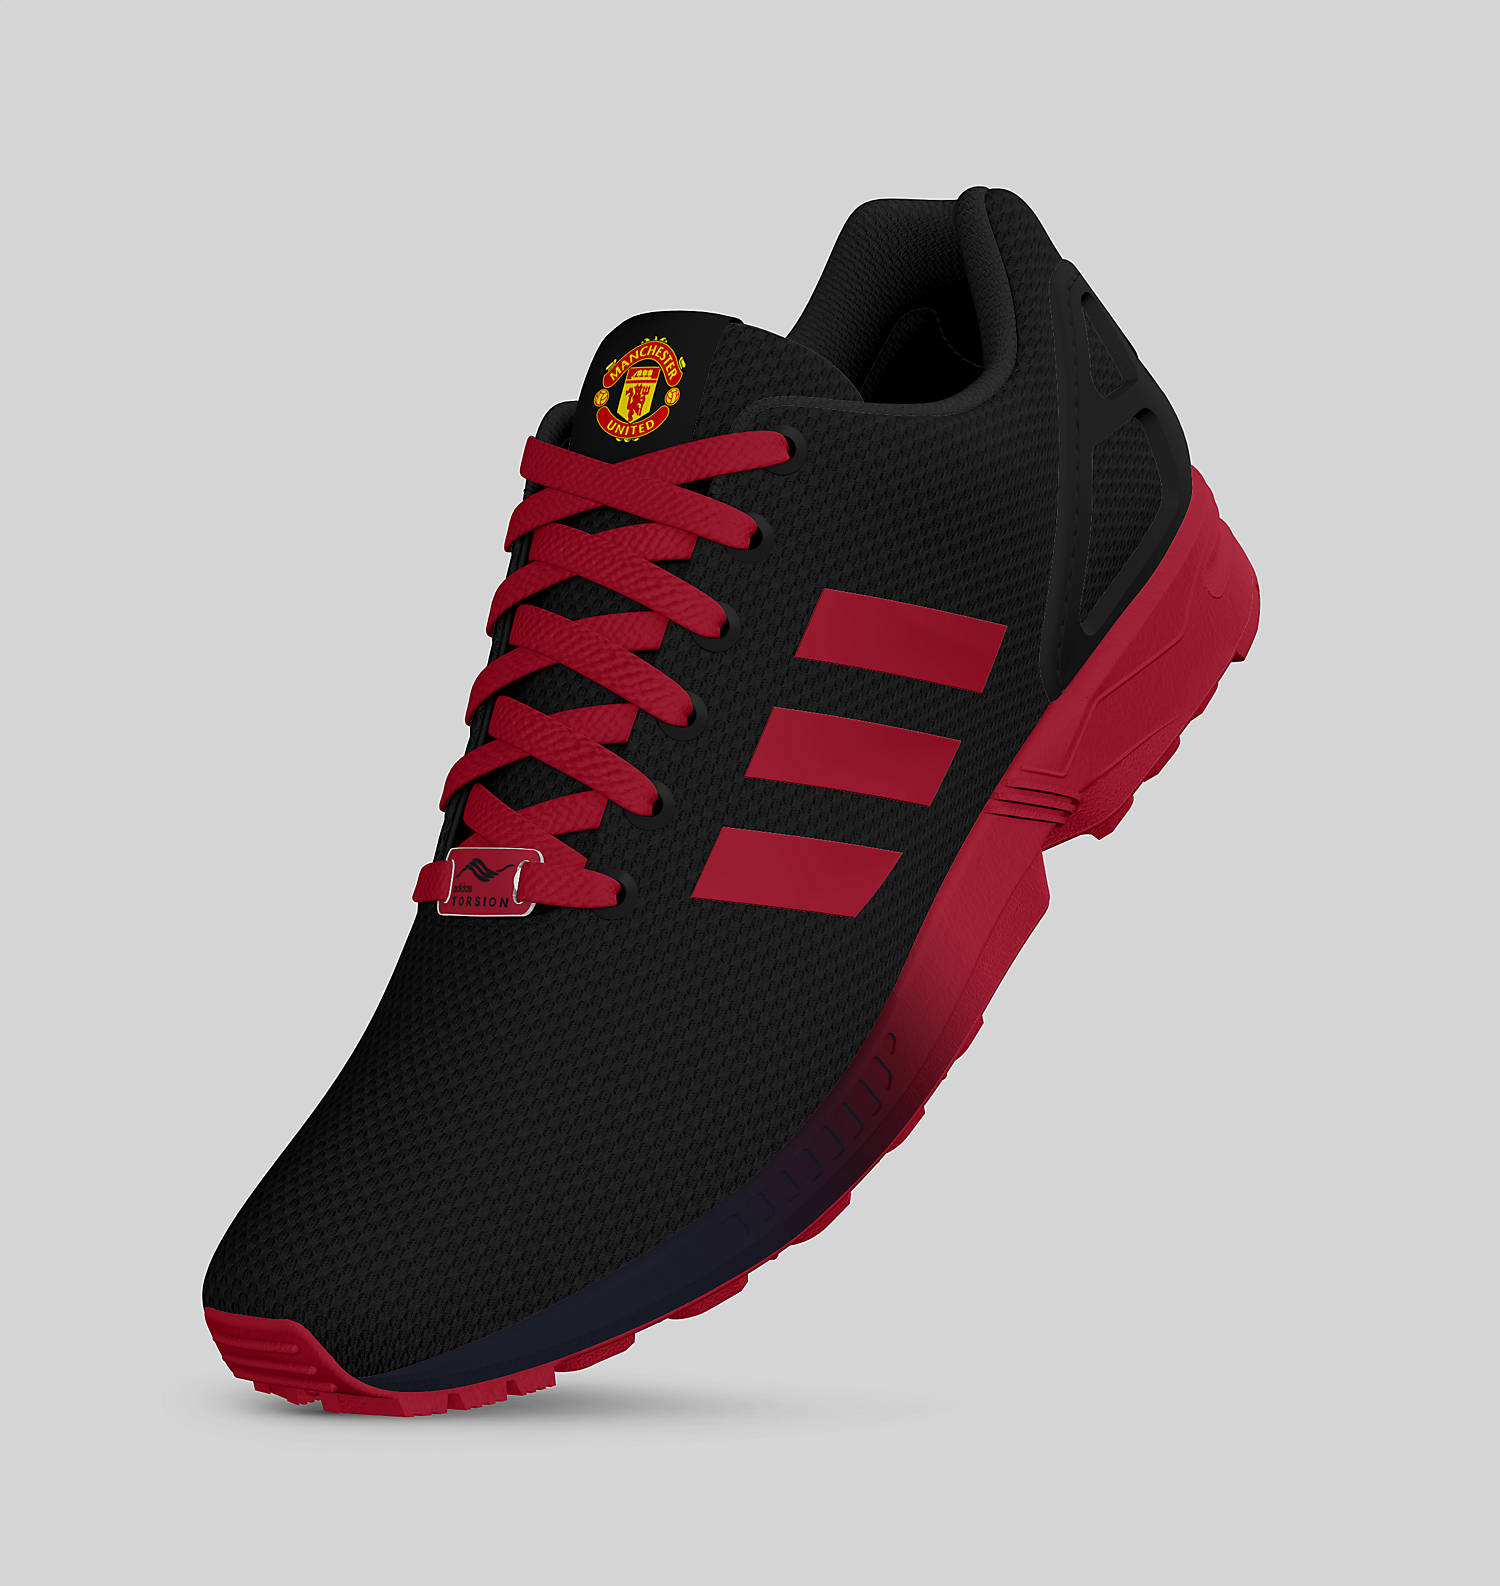 adidas zx flux manchester united